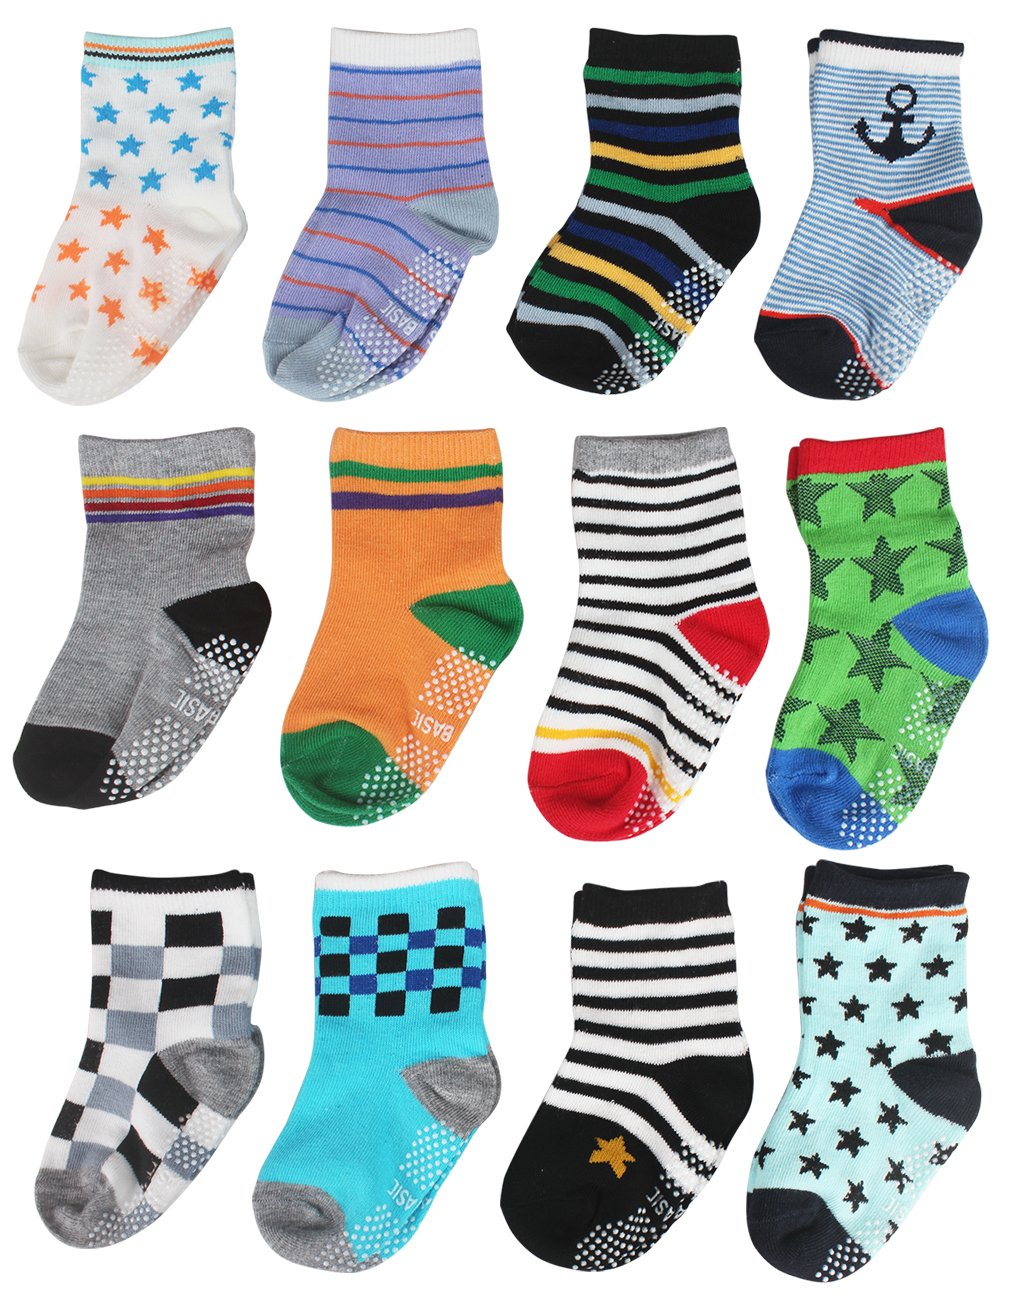 Cubaco Baby Socks, 12 Pairs Toddler Non Skid Anti Slip Cotton Socks with Grips